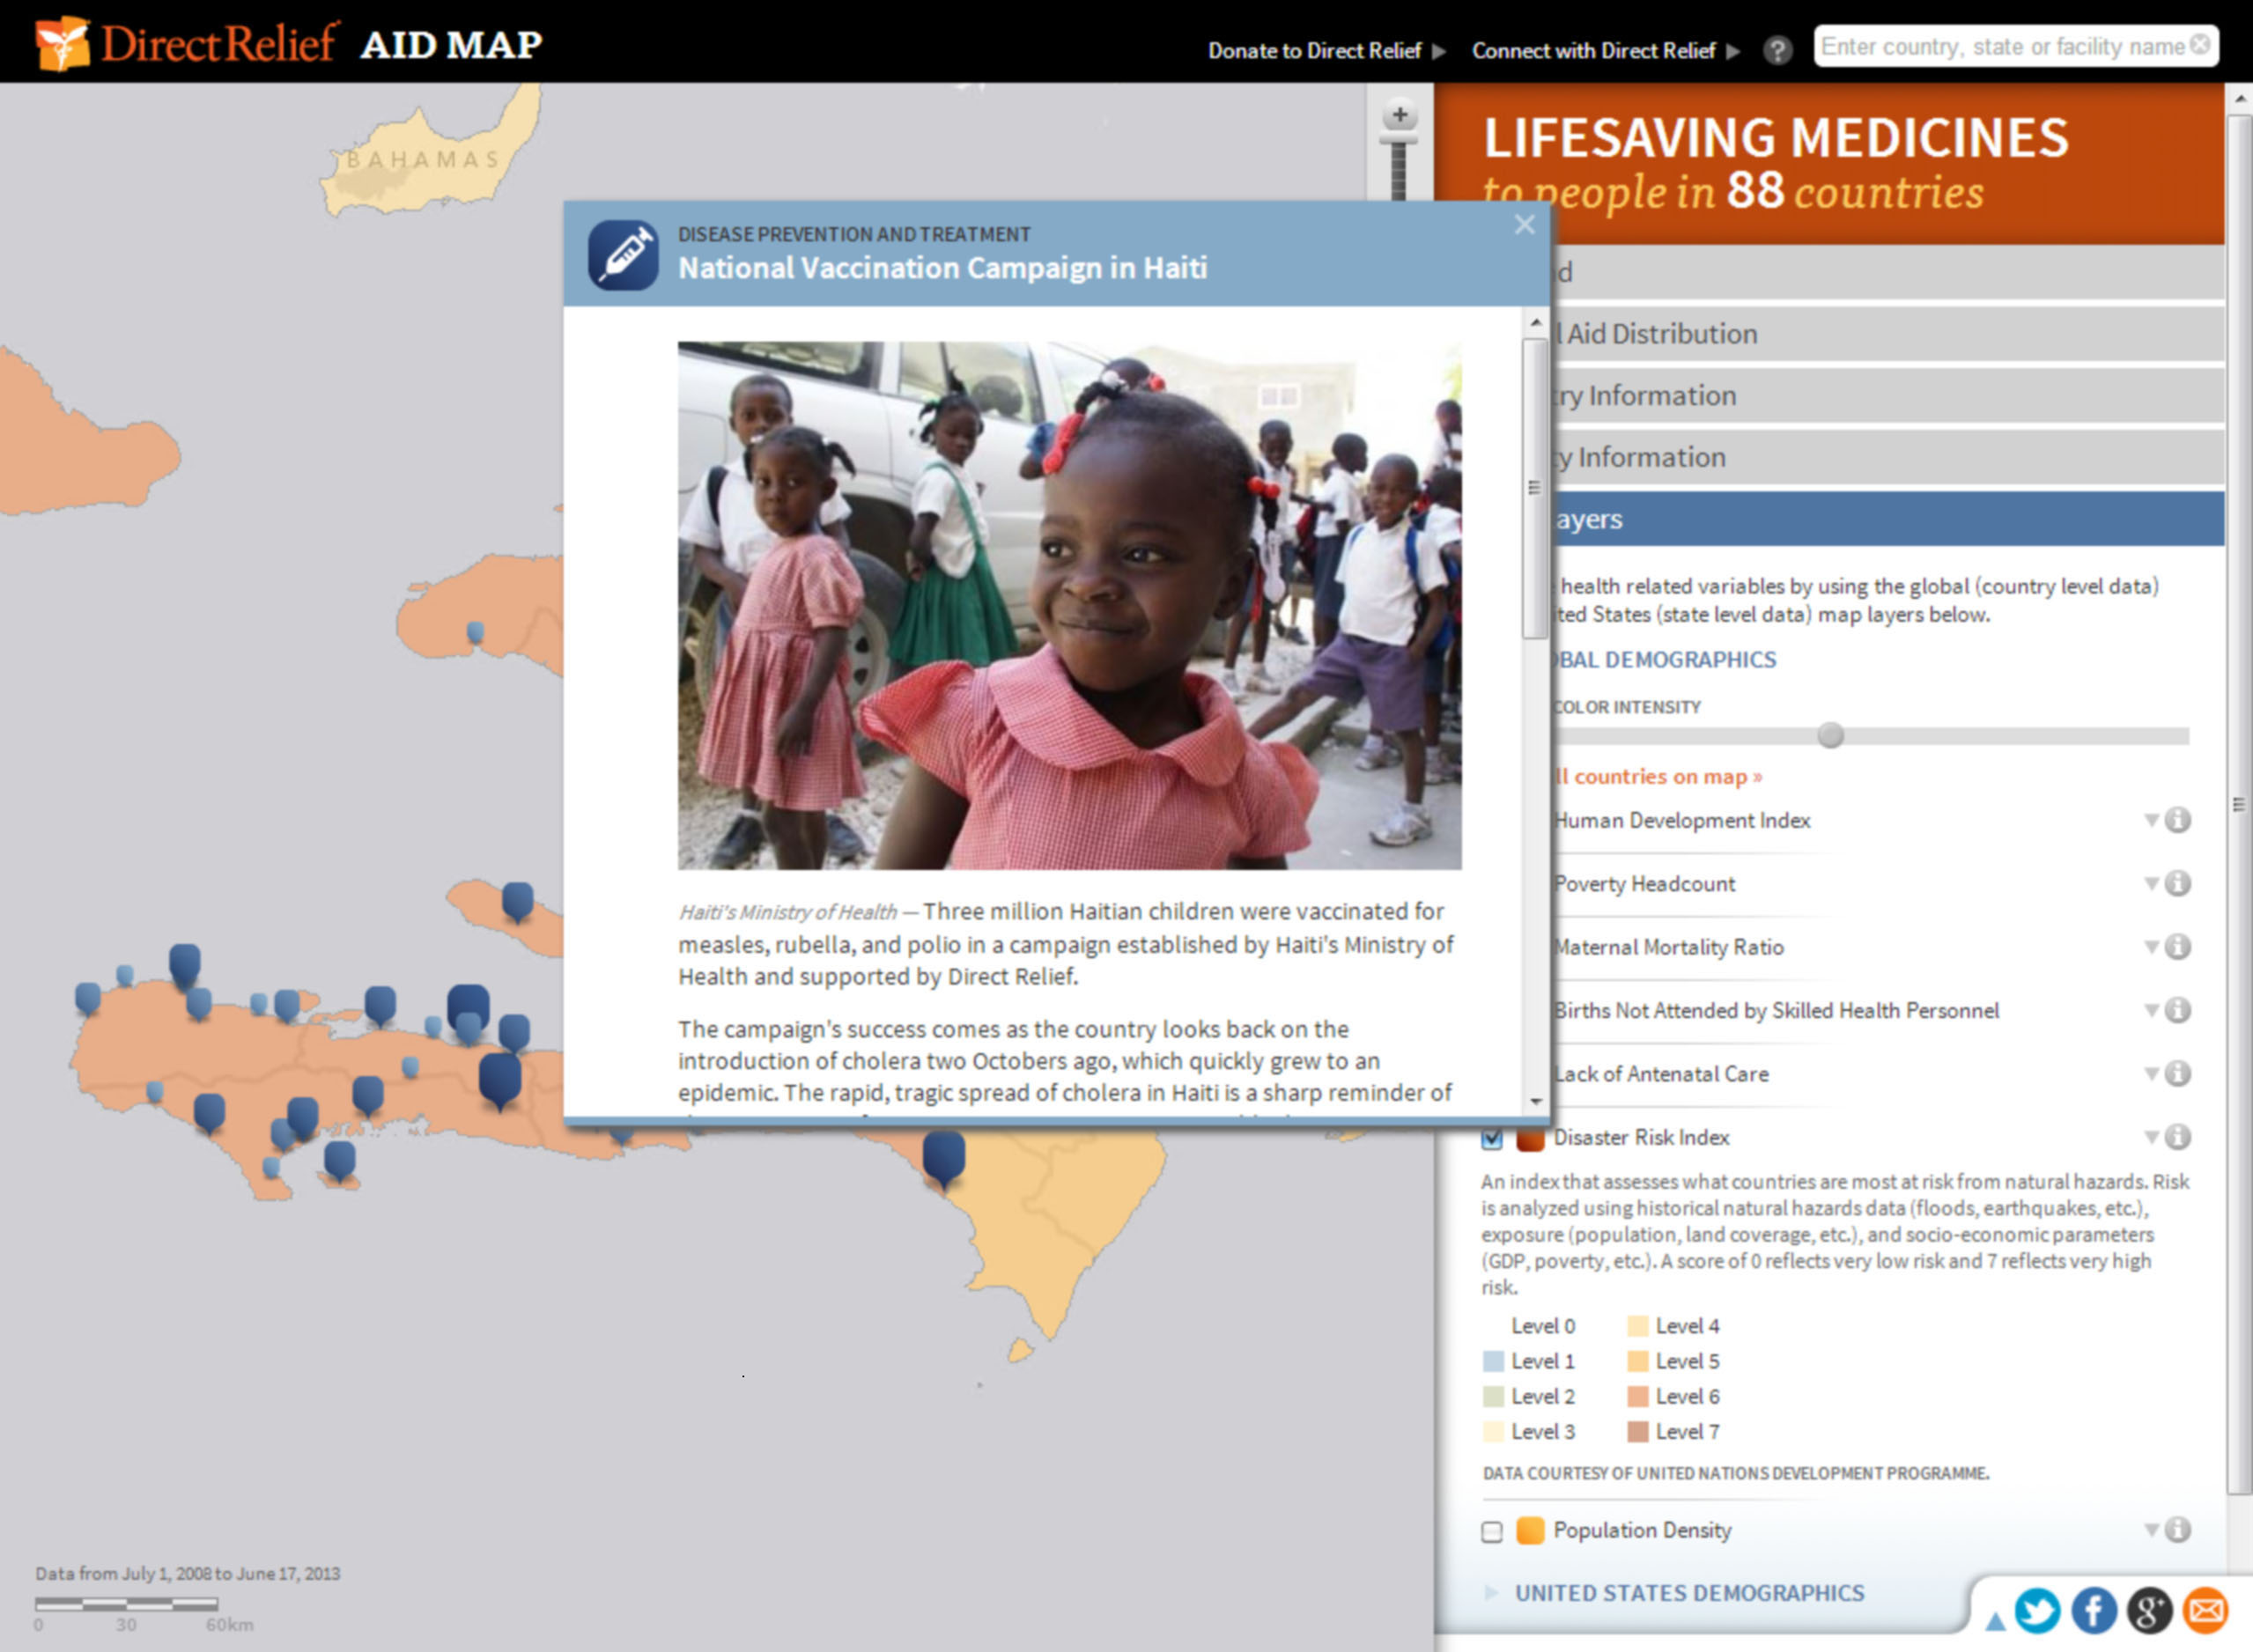 Direct Relief's interactive AidMap documents its humanitarian efforts in more than 70 countries.